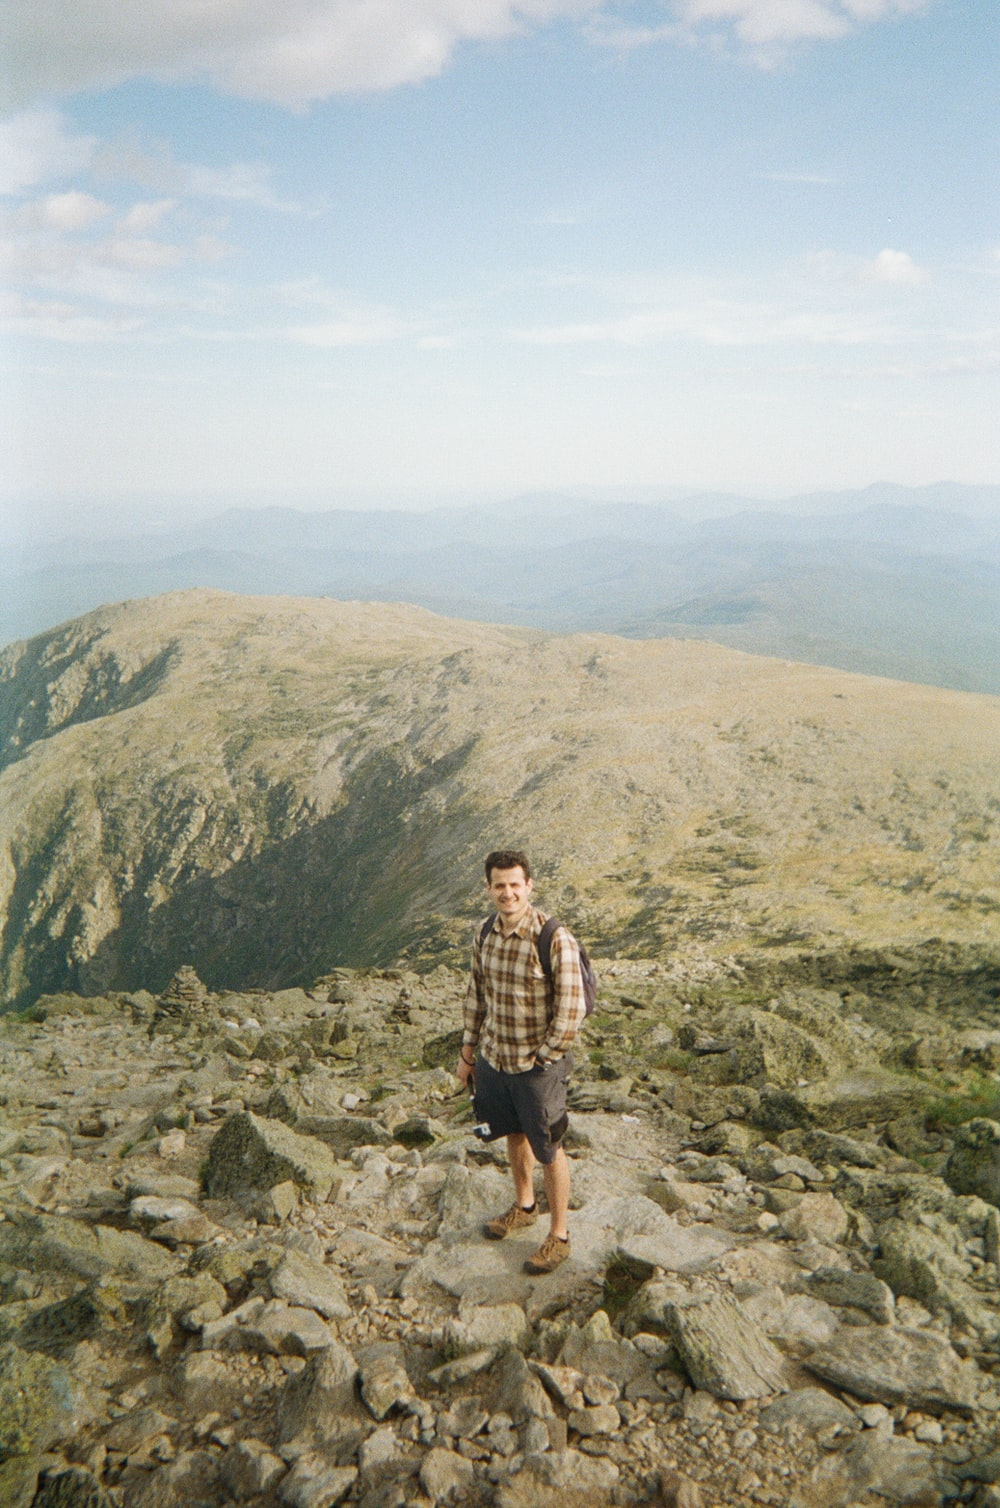 man in brown and black plaid shirt standing on rocky mountain during daytime